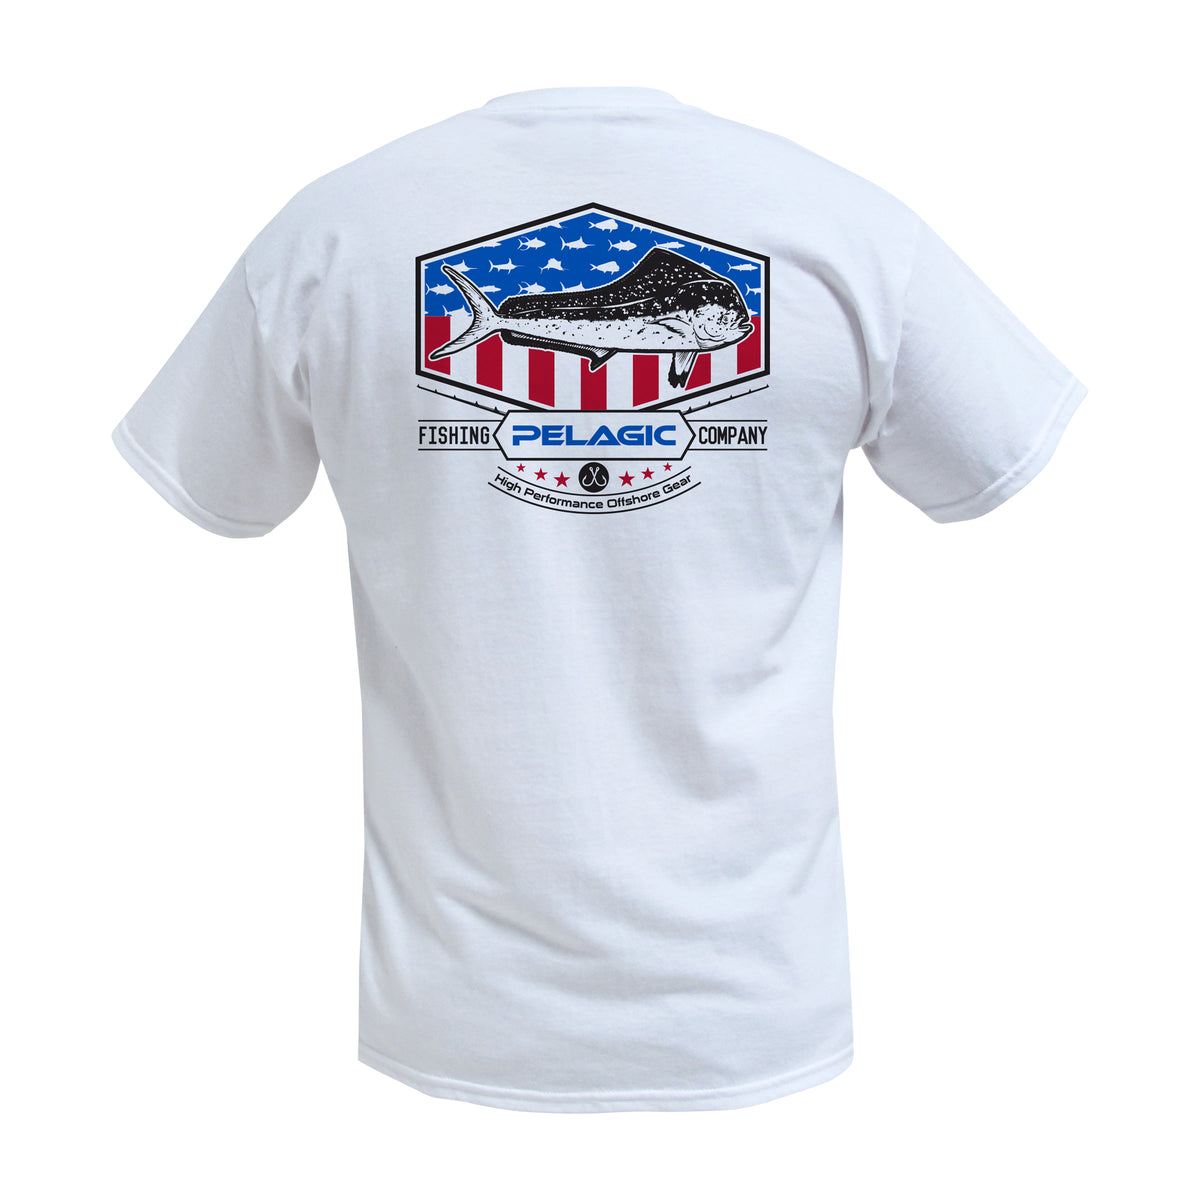 Patriot Dorado Fishing T-shirt Big Image - 1